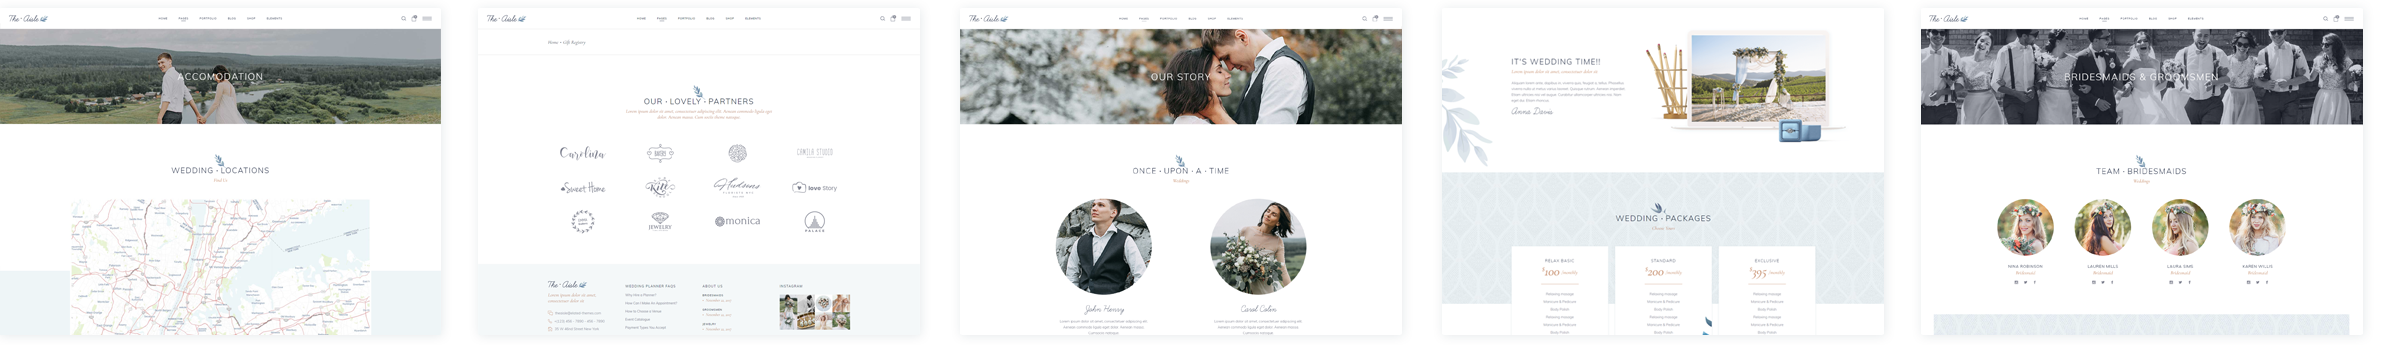 landing-innerpages-1